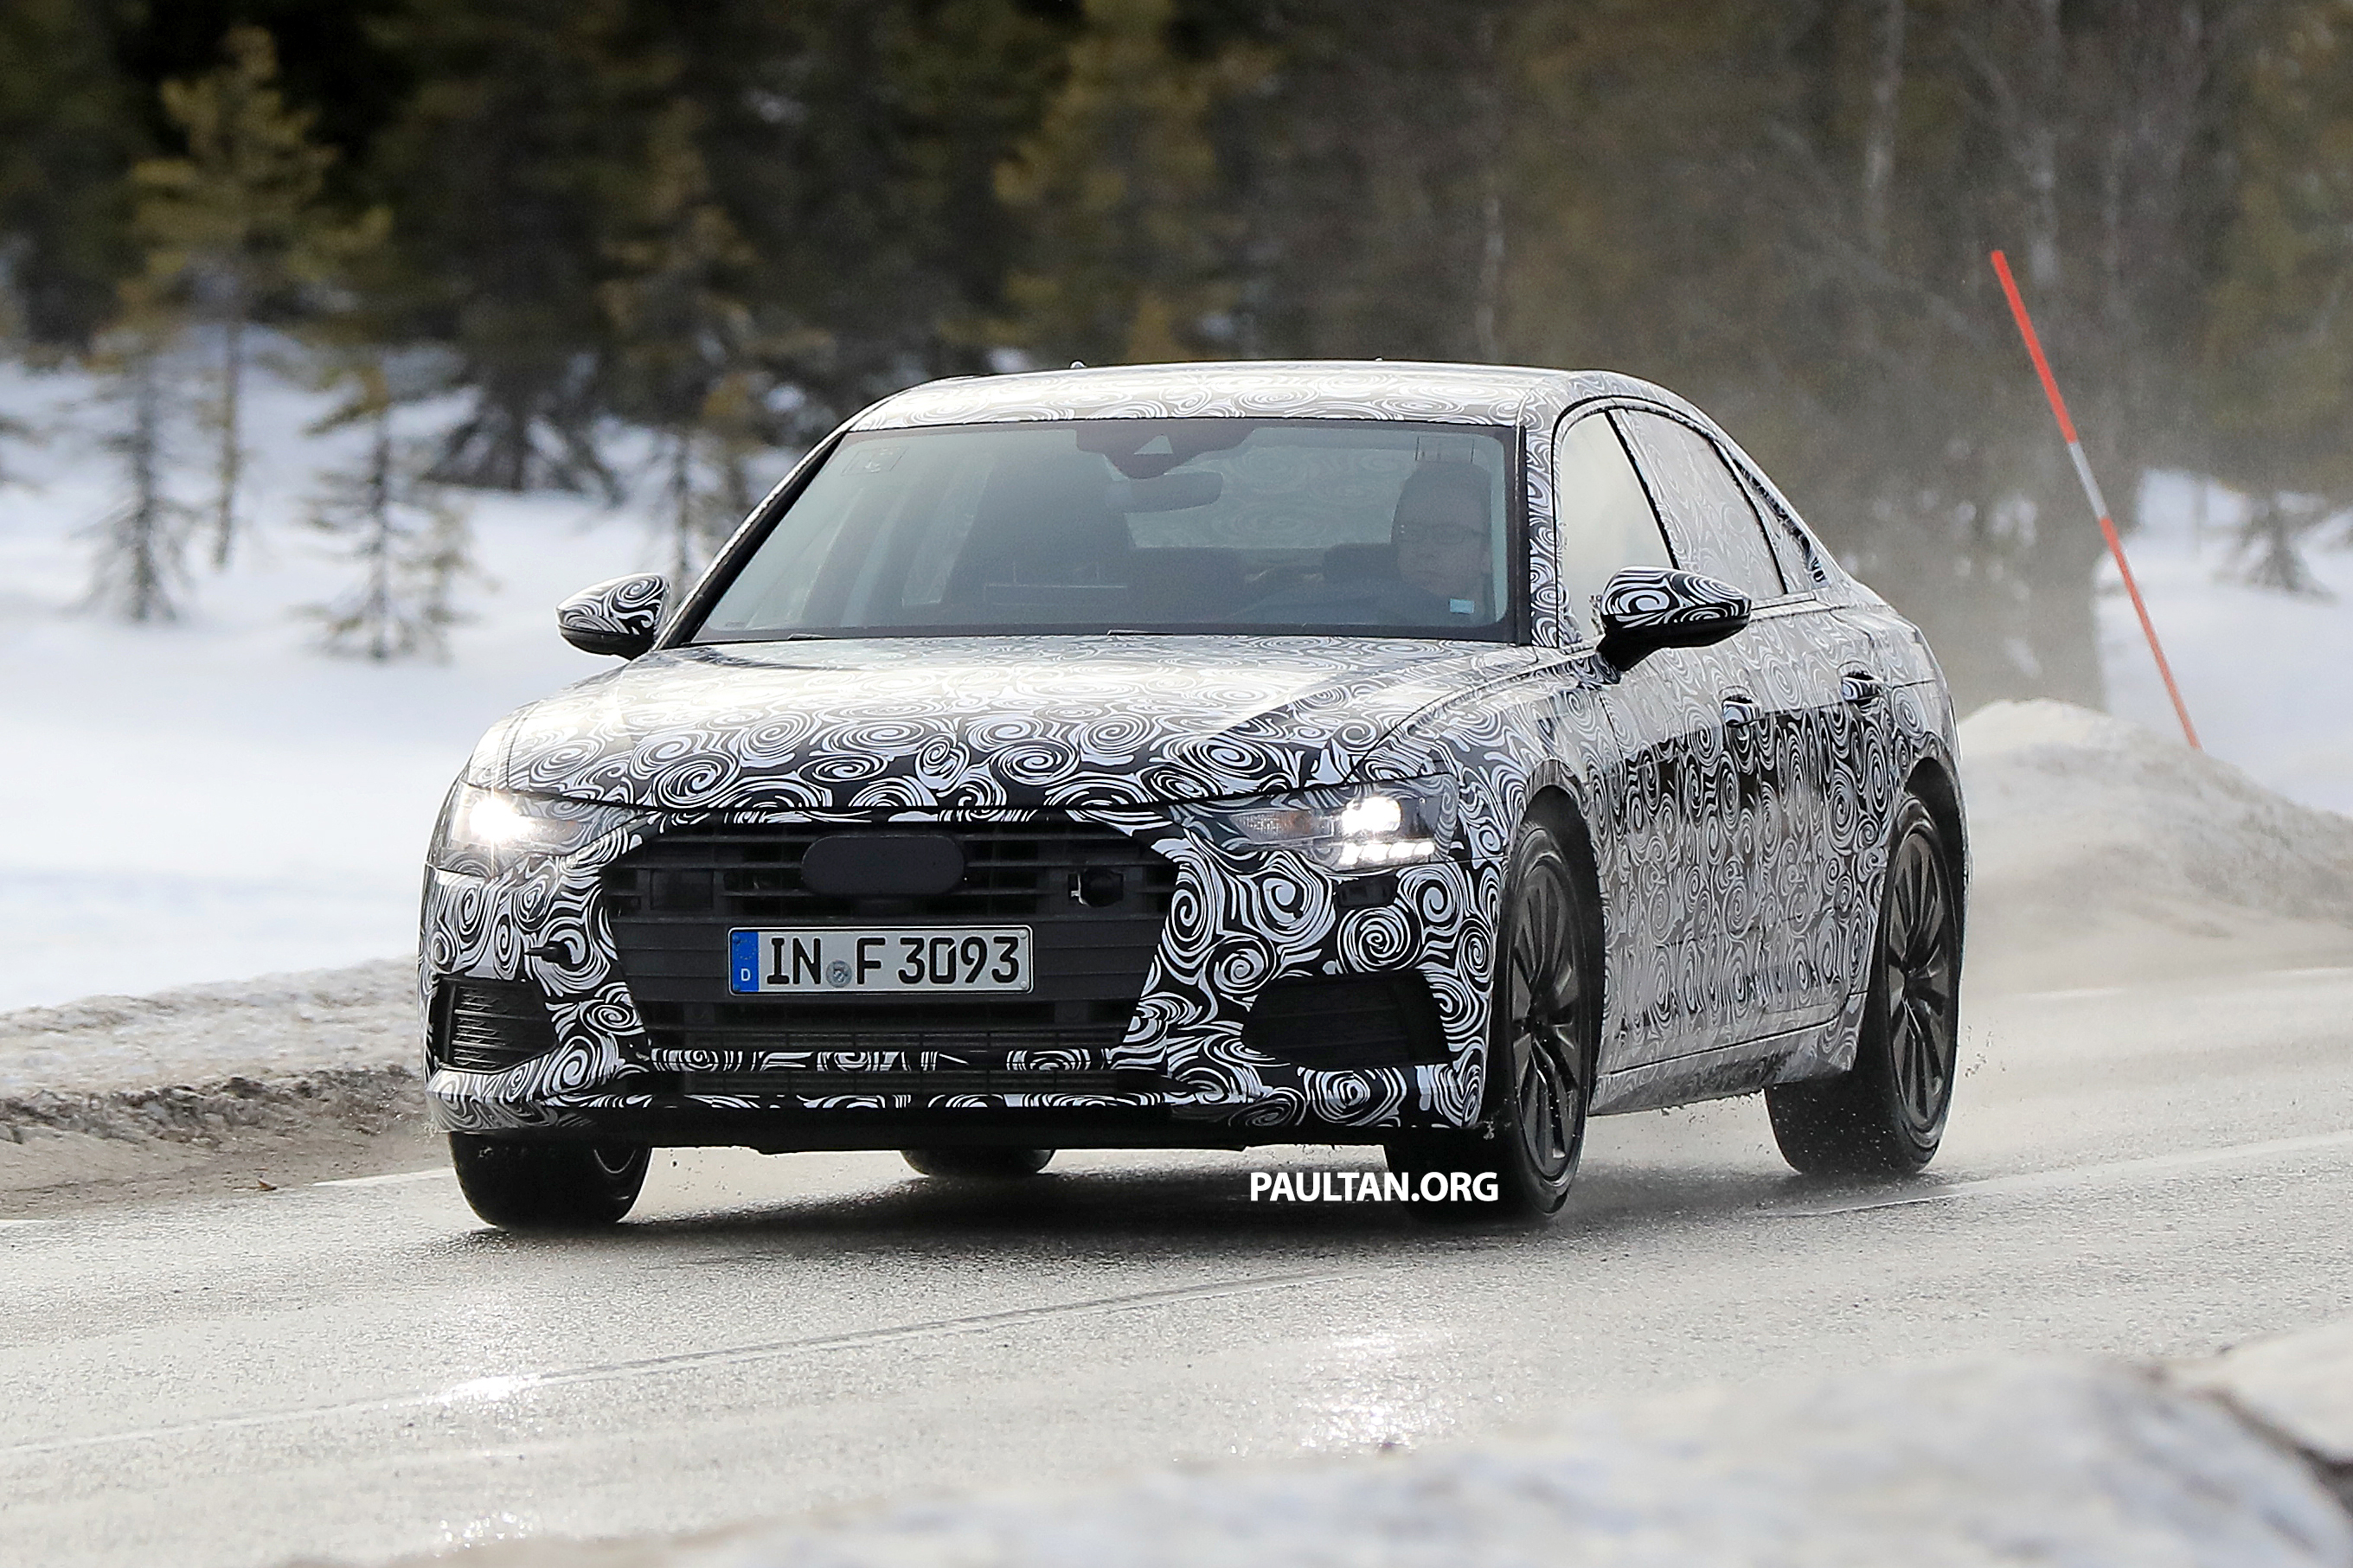 SPYSHOTS: 2018 Audi A6 shows off its new curves Image 615132